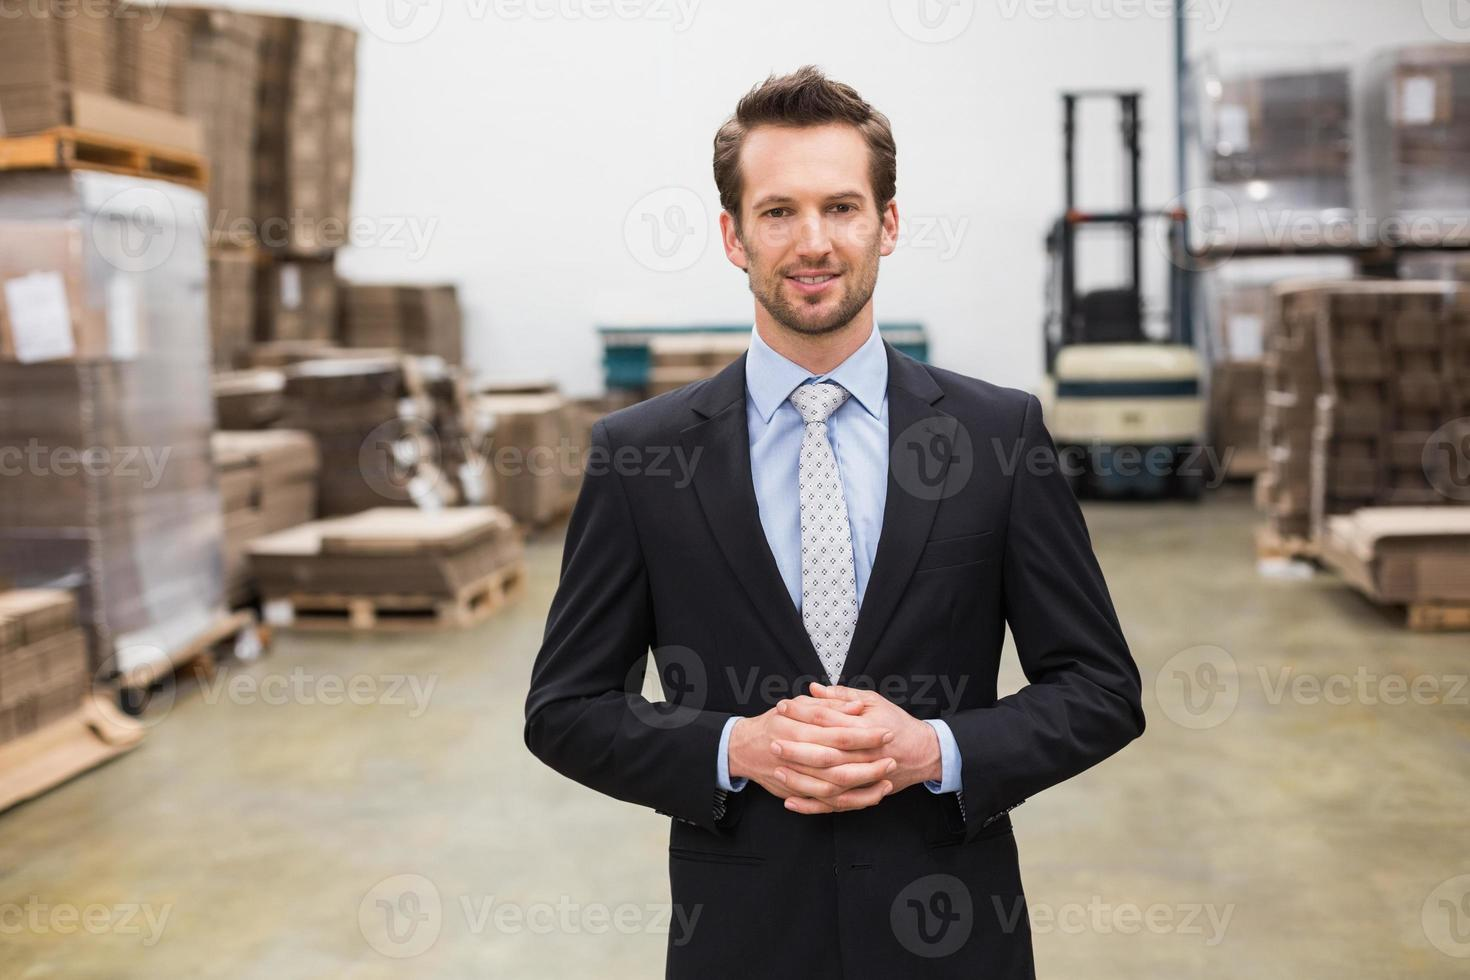 Warehouse manager standing hands together photo